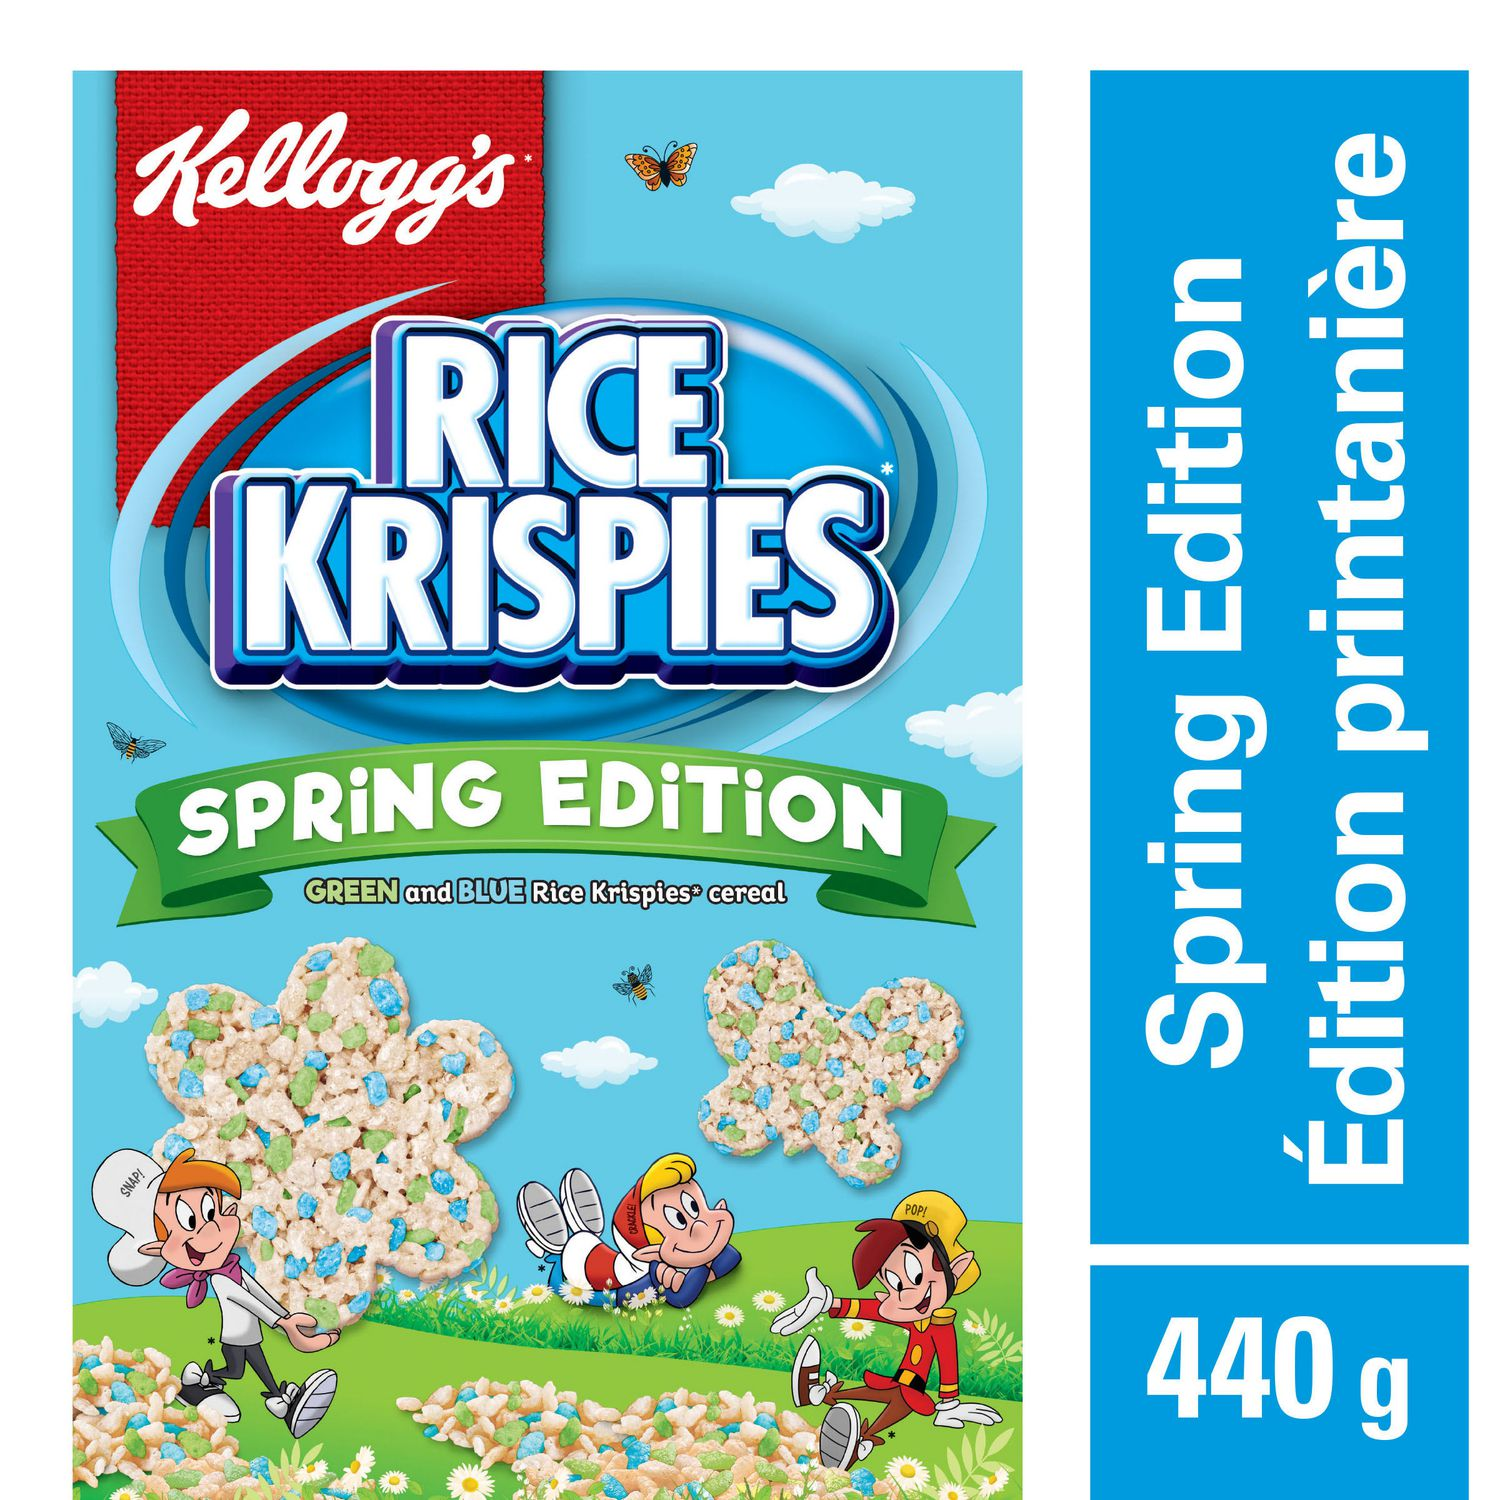 Rice Krispies - Spring Edition